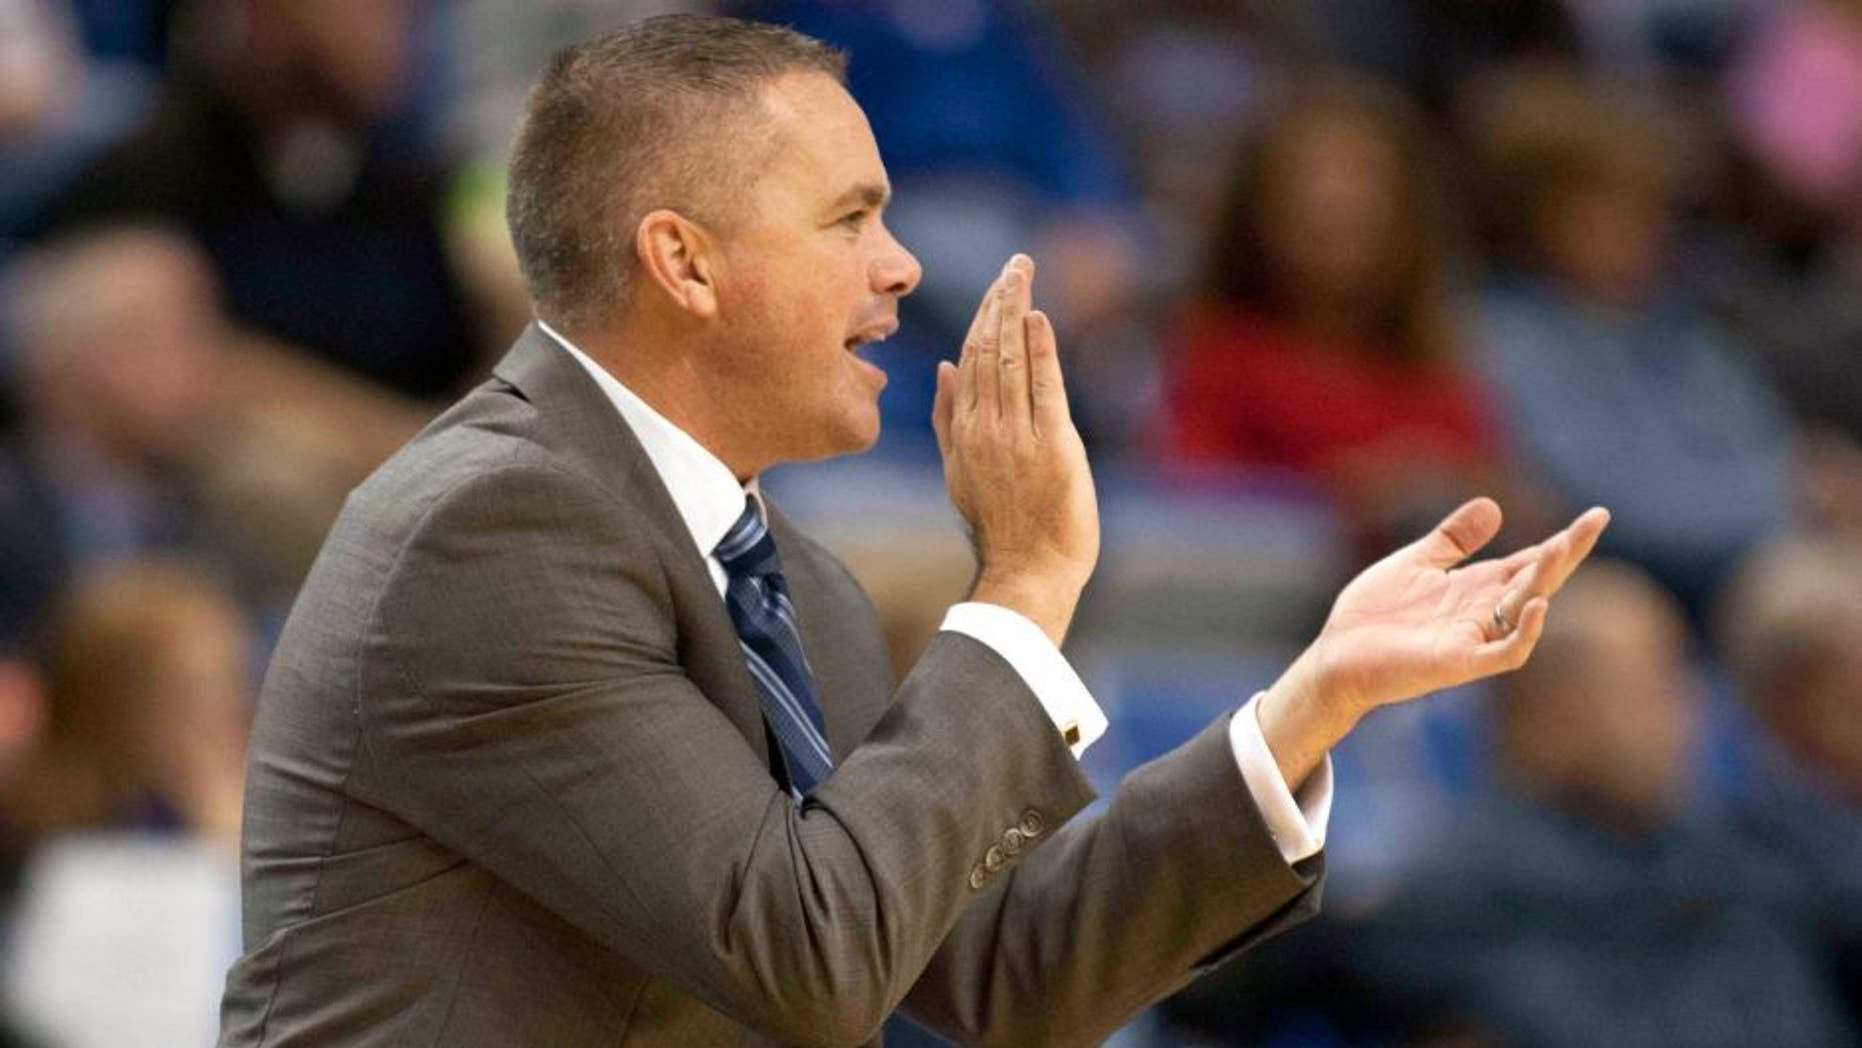 Dec 3, 2014; Terre Haute, IN, USA; Butler Bulldogs head coach Chris Holtmann applauds his team from the sideline in the second half of the game against the Indiana State Sycamores at Hulman Center. Butler won 77-54. Mandatory Credit: Trevor Ruszkowski-USA TODAY Sports